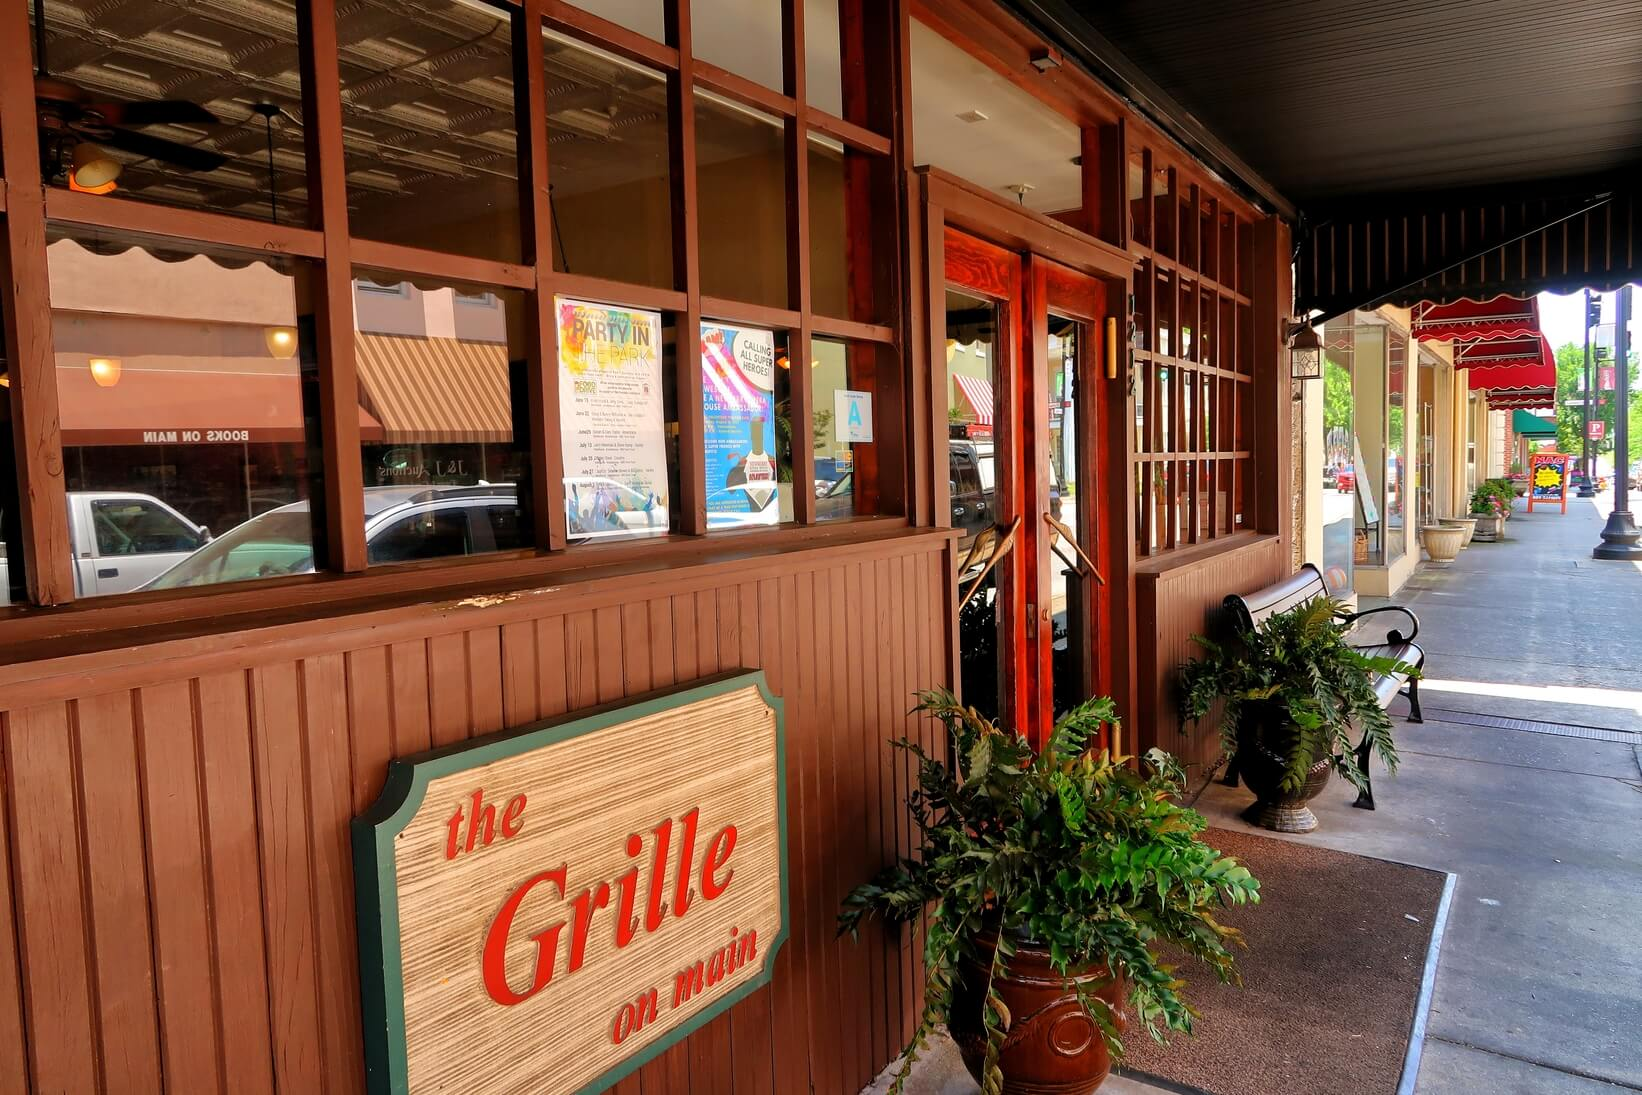 The Grille On Main, Newberry South Carolina